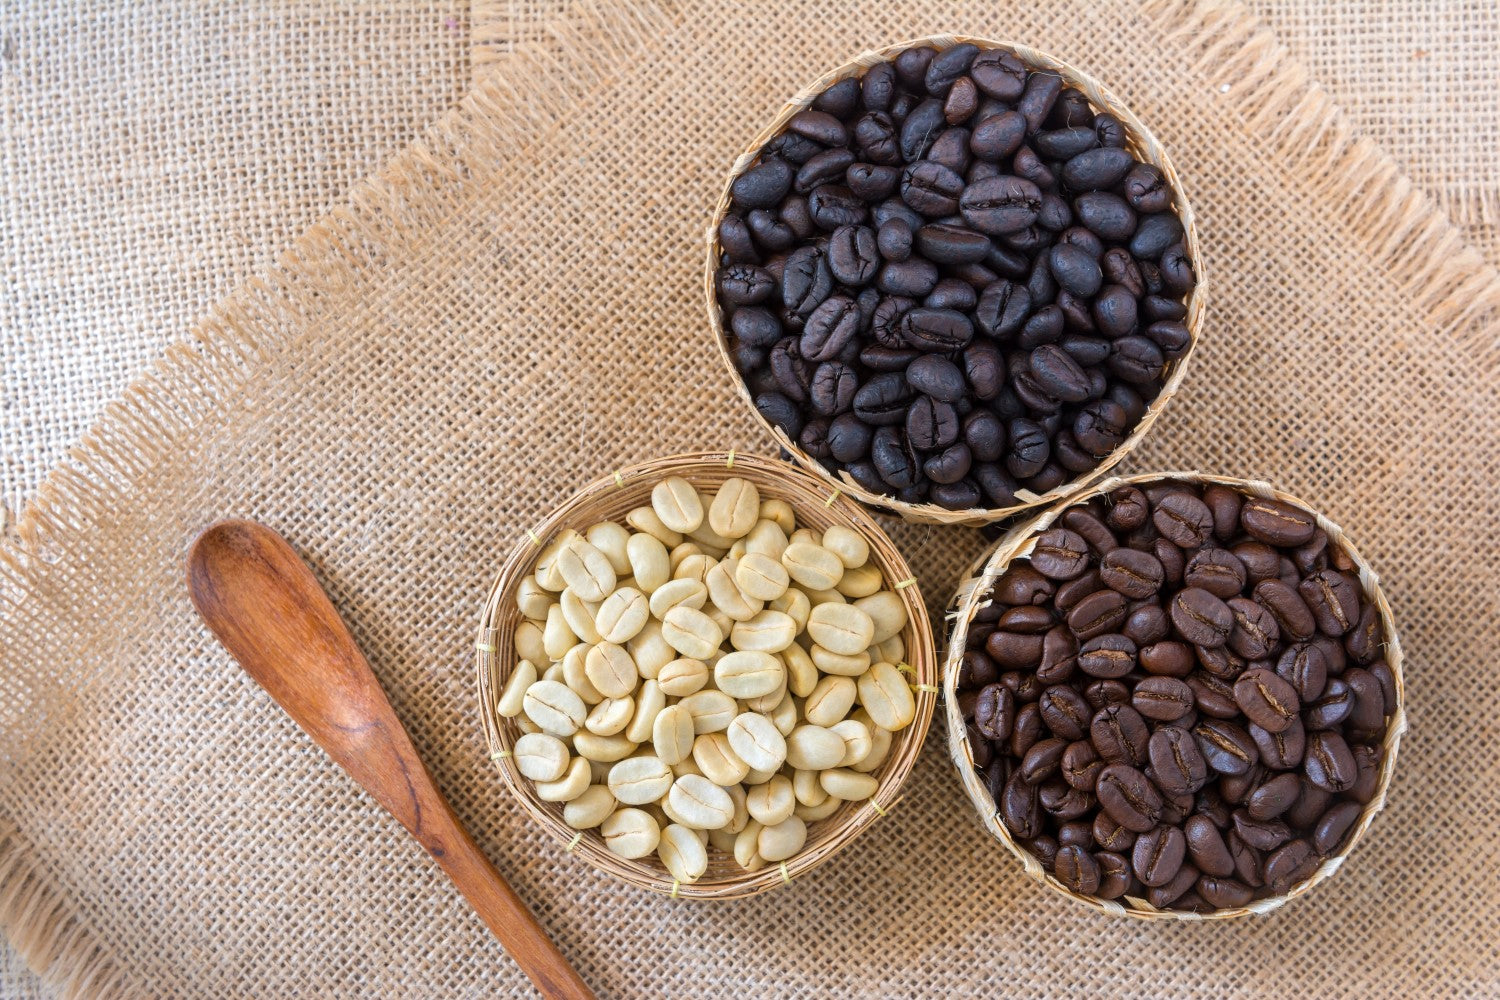 white, medium and dark coffee beans